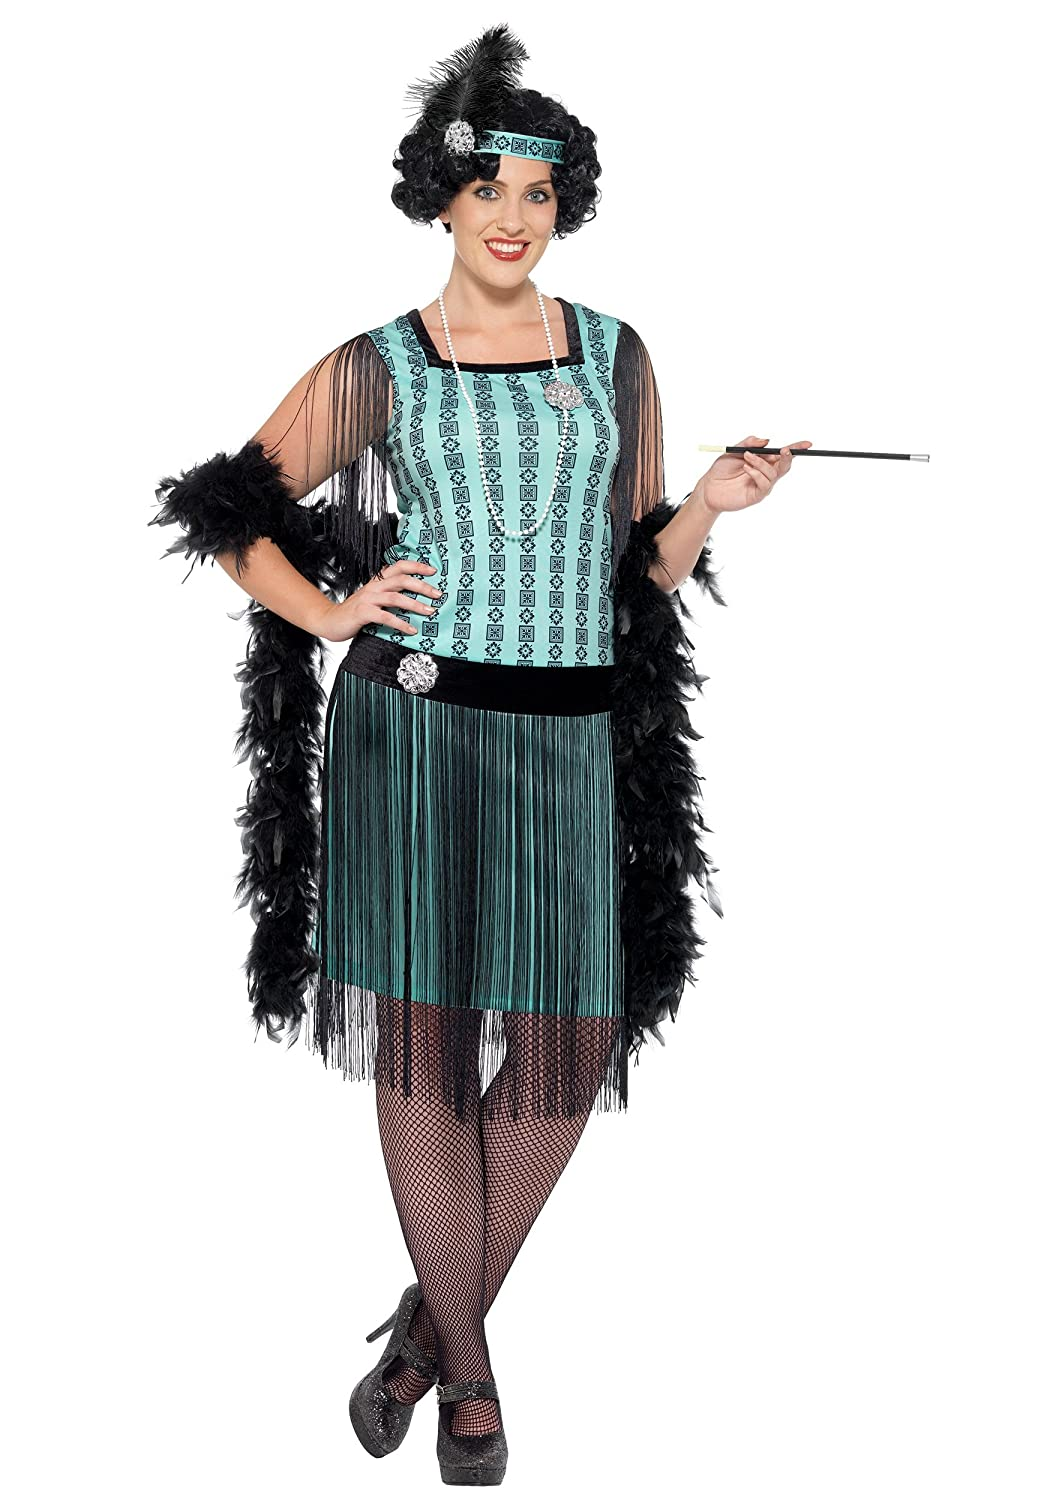 Roaring 20s Costumes- Flapper Costumes, Gangster Costumes Smiffys womens Womens Plus Size 1920s Mint Coco Flapper Costume $59.99 AT vintagedancer.com